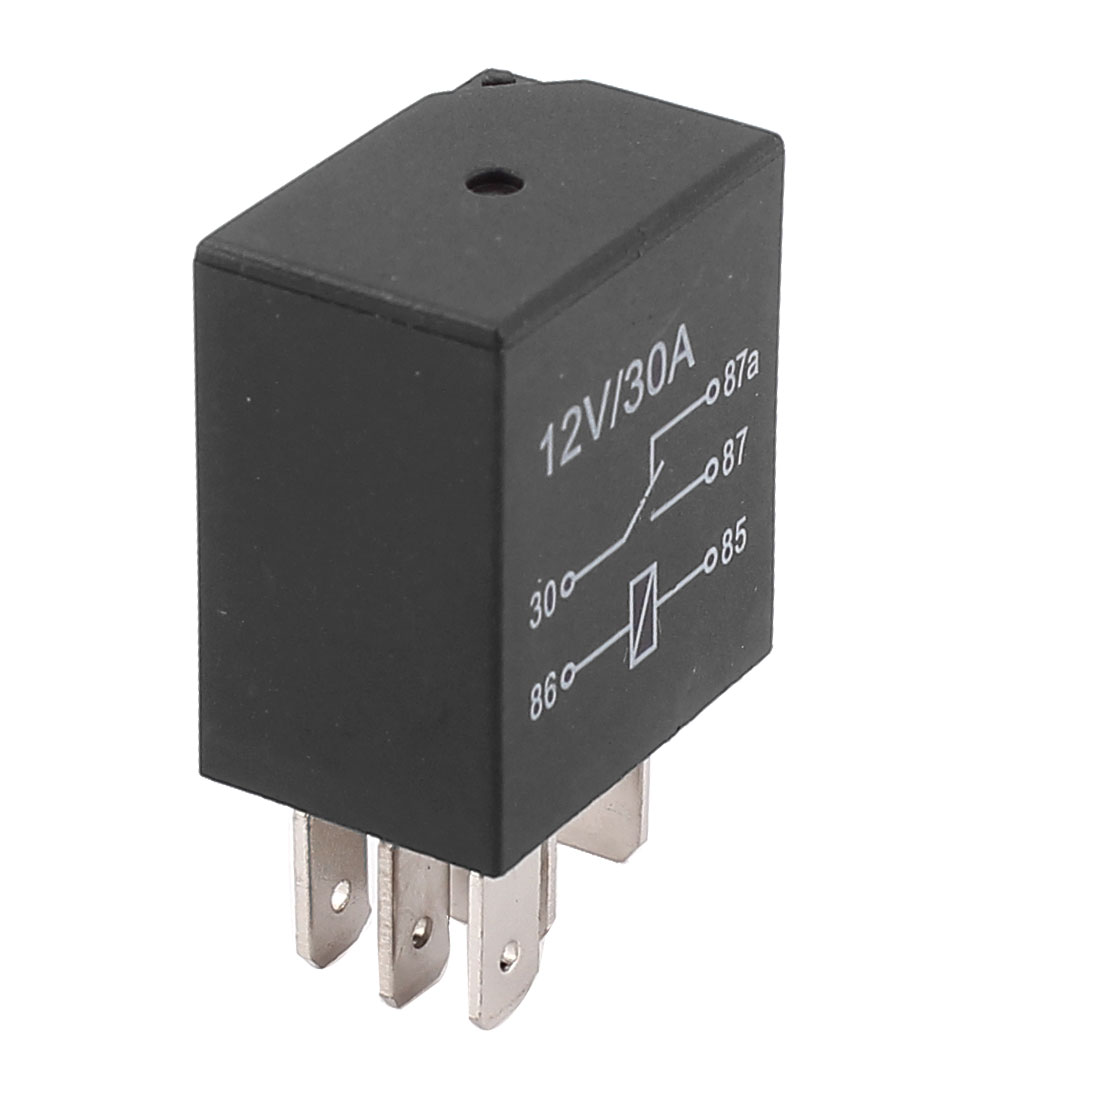 DC 12V 30A Car 5 Pins Terminals 1NO 1NC SPDT Relay Black